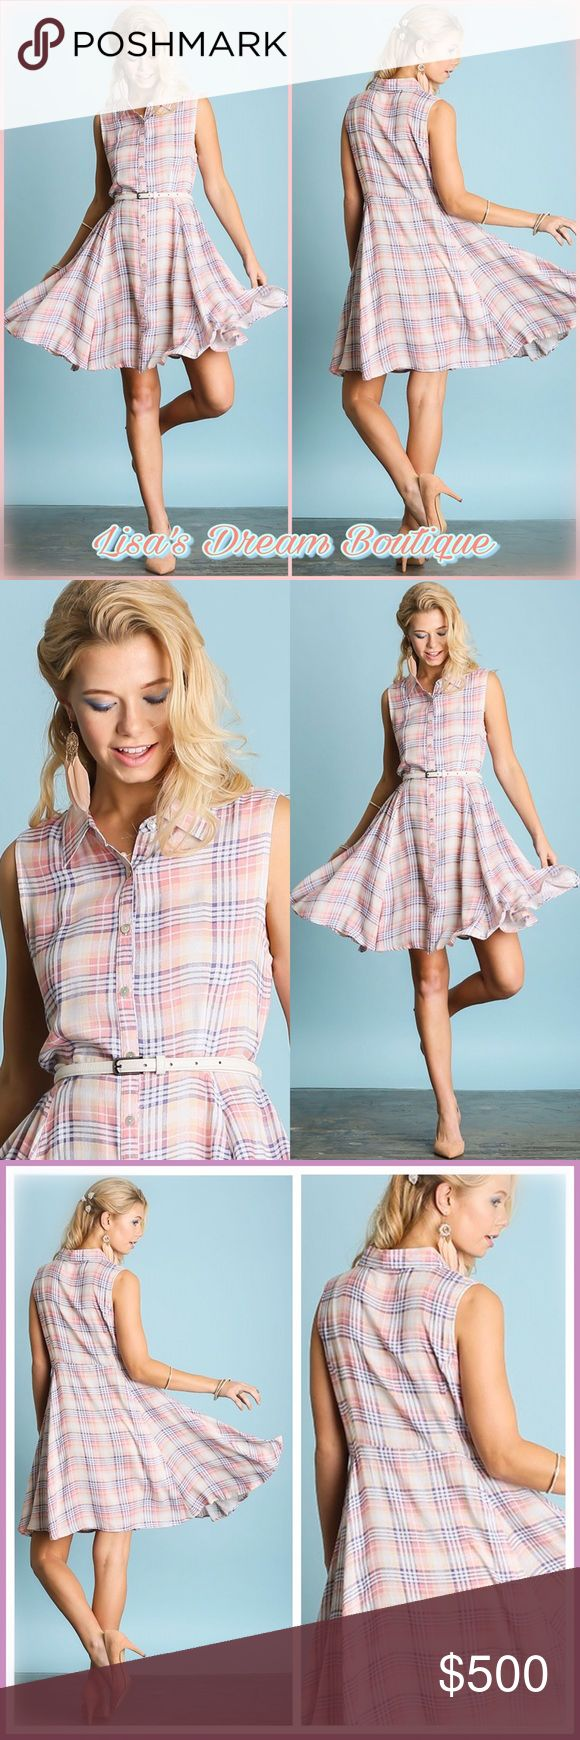 ✨New Arrival!✨Plaid Print Shirt Dress✨ 🆕Super Cute Pastel Plaid button down shirt dress...🌷Premium quality from Umgee🌷Fits true to your normal size🌷Practical and  versatile, can be dressed up or down as well as changing belt color for a different look👀🛍Lightweight cotton-blend, extremely comfy!🌼🔹NO TRADES🔹PRICE WILL BE FIRM UNLESS BUNDLED🔹💟25% OFF BUNDLES {Limited Time}💟 LDB Dresses Midi